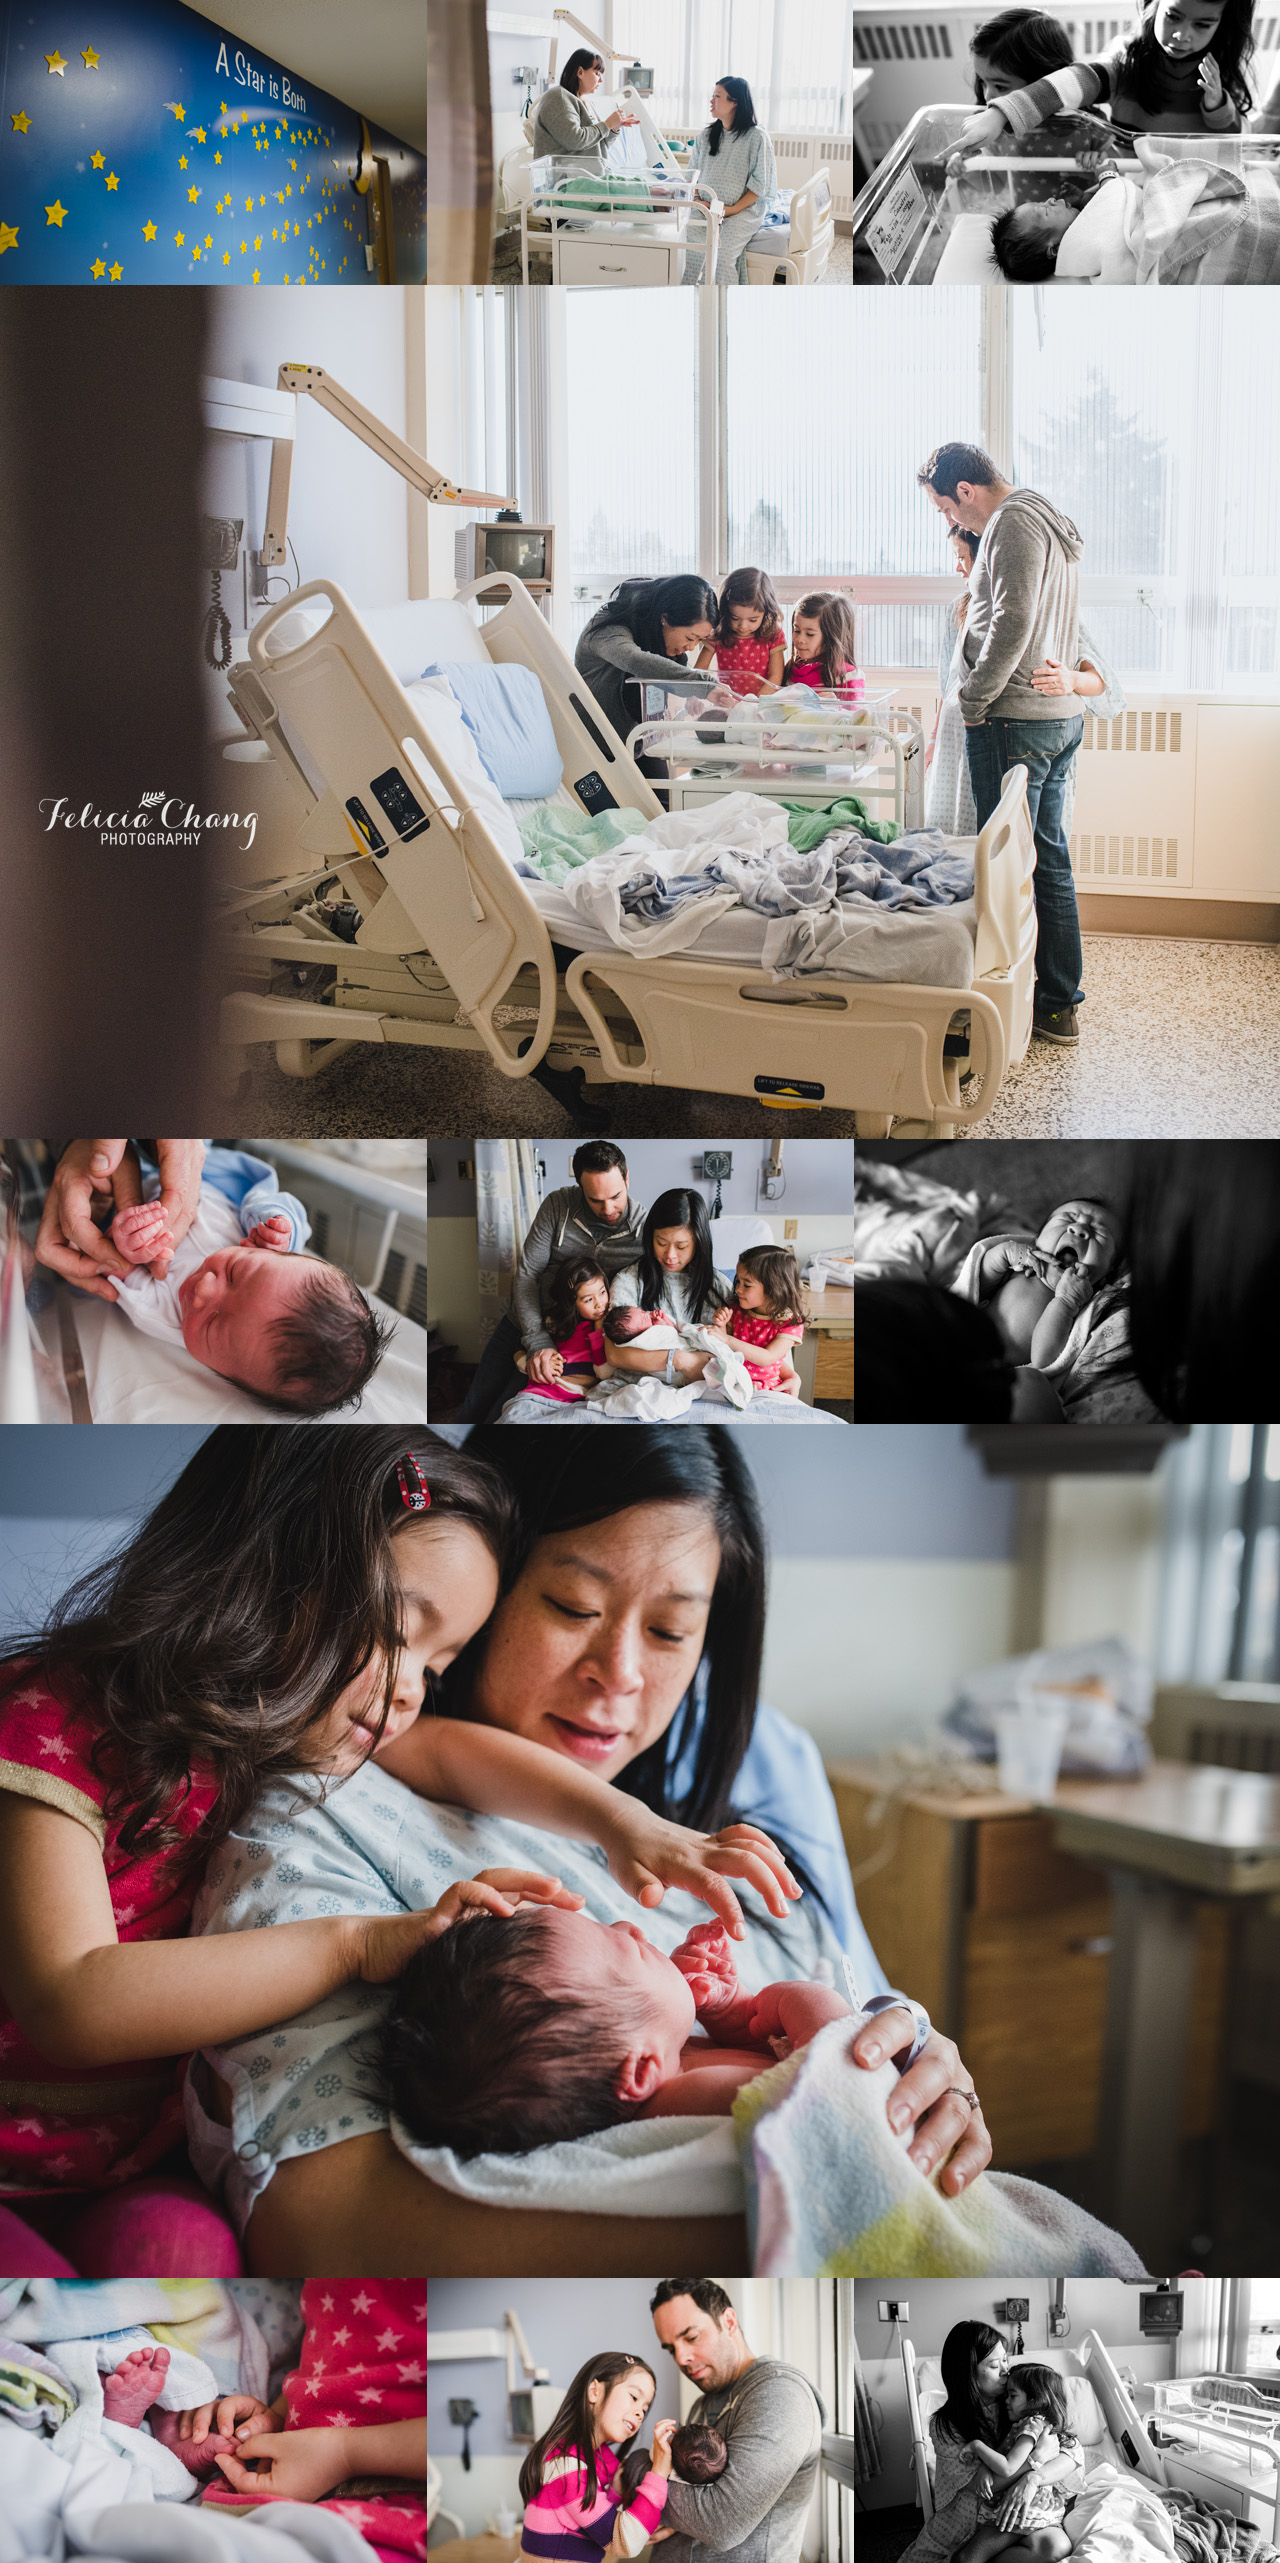 Vancouver newborn hospital photos | Felicia Chang Photography